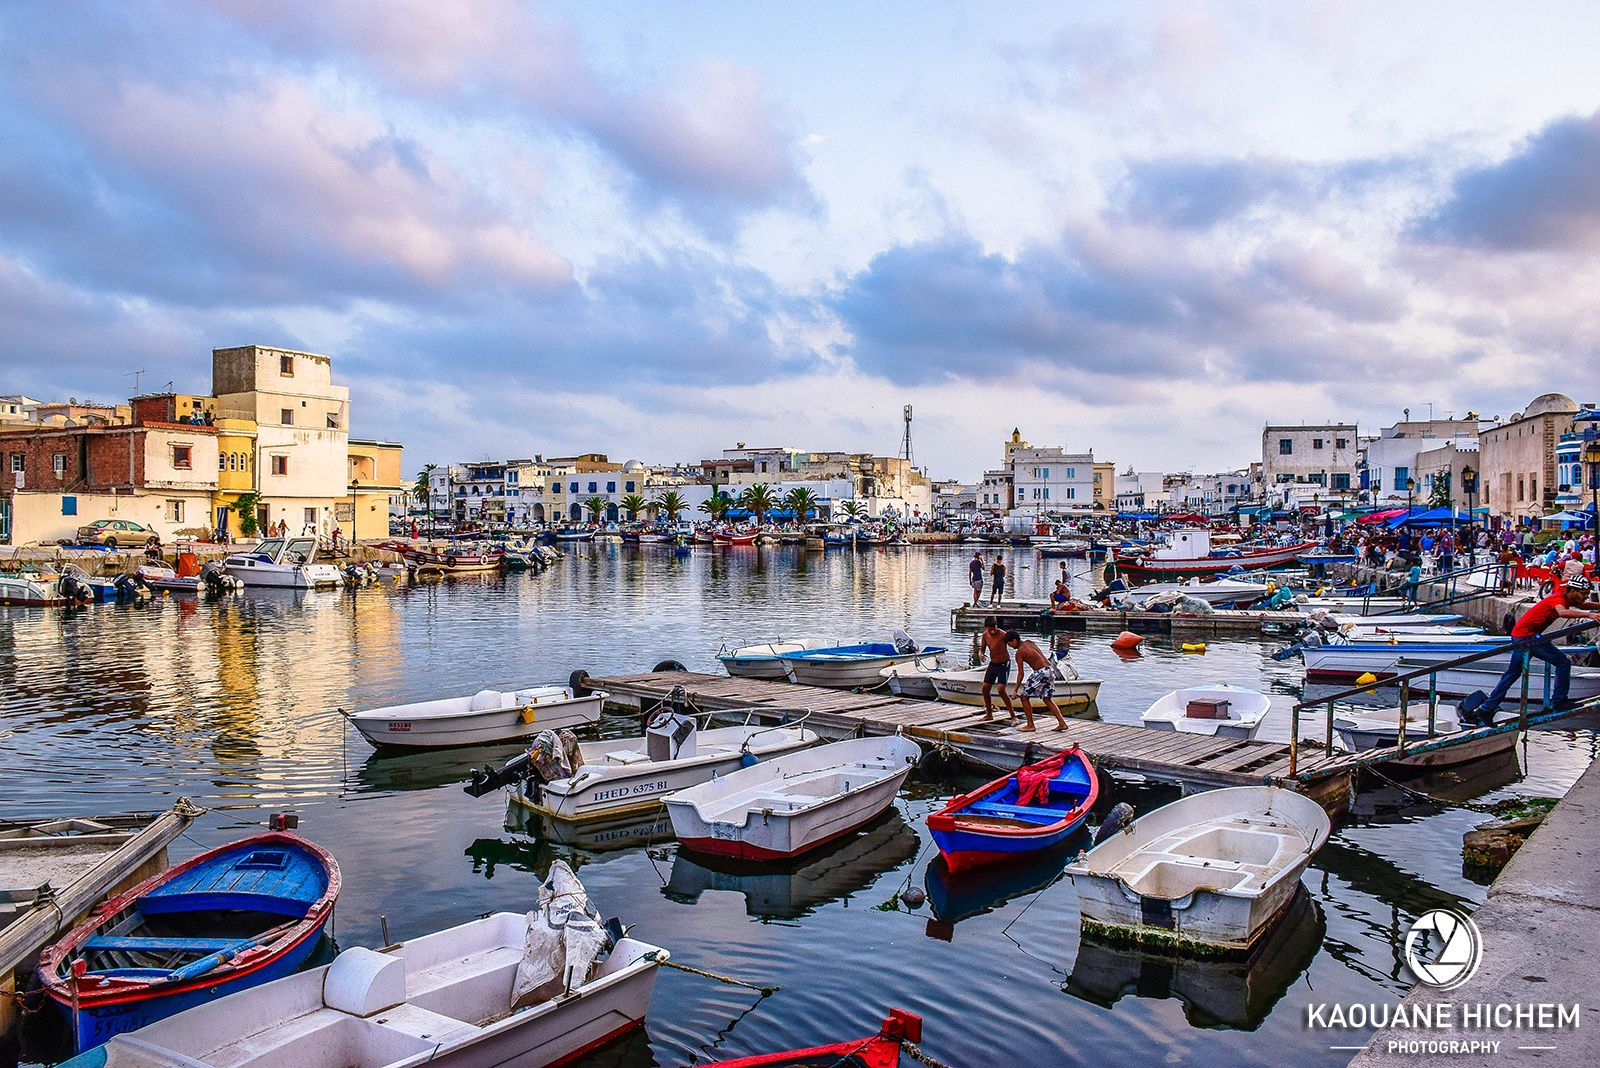 Street Photography : Le vieux port by kaouane_hichem https://t.co/AD0lm1KPtV | #streets #photography #photos #500px  #photography